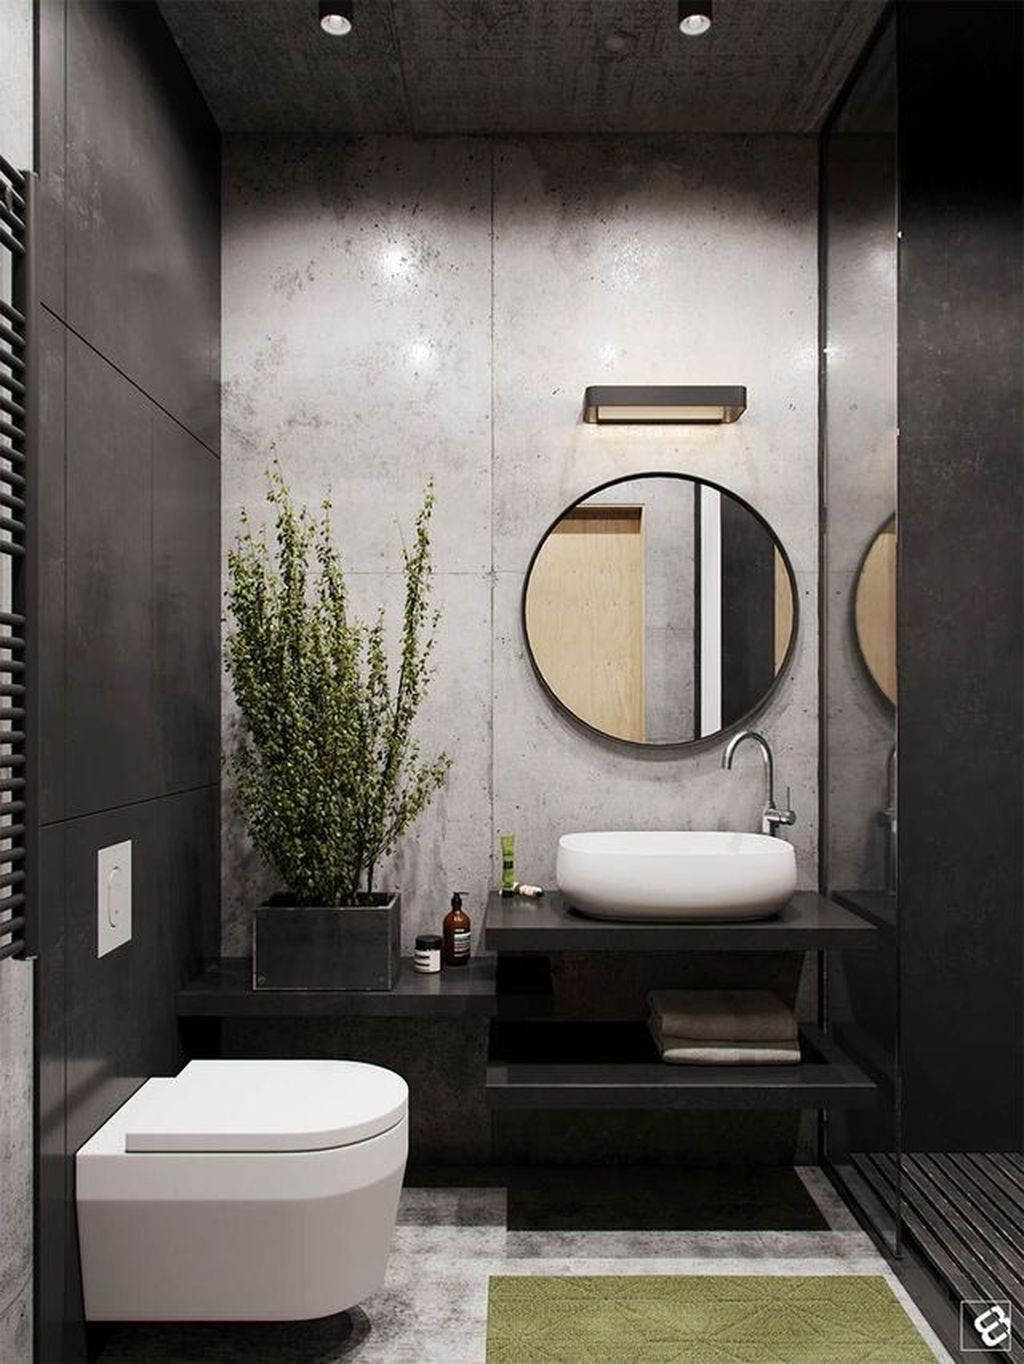 Inspiring Black Powder Room Design Ideas With Modern Style 05